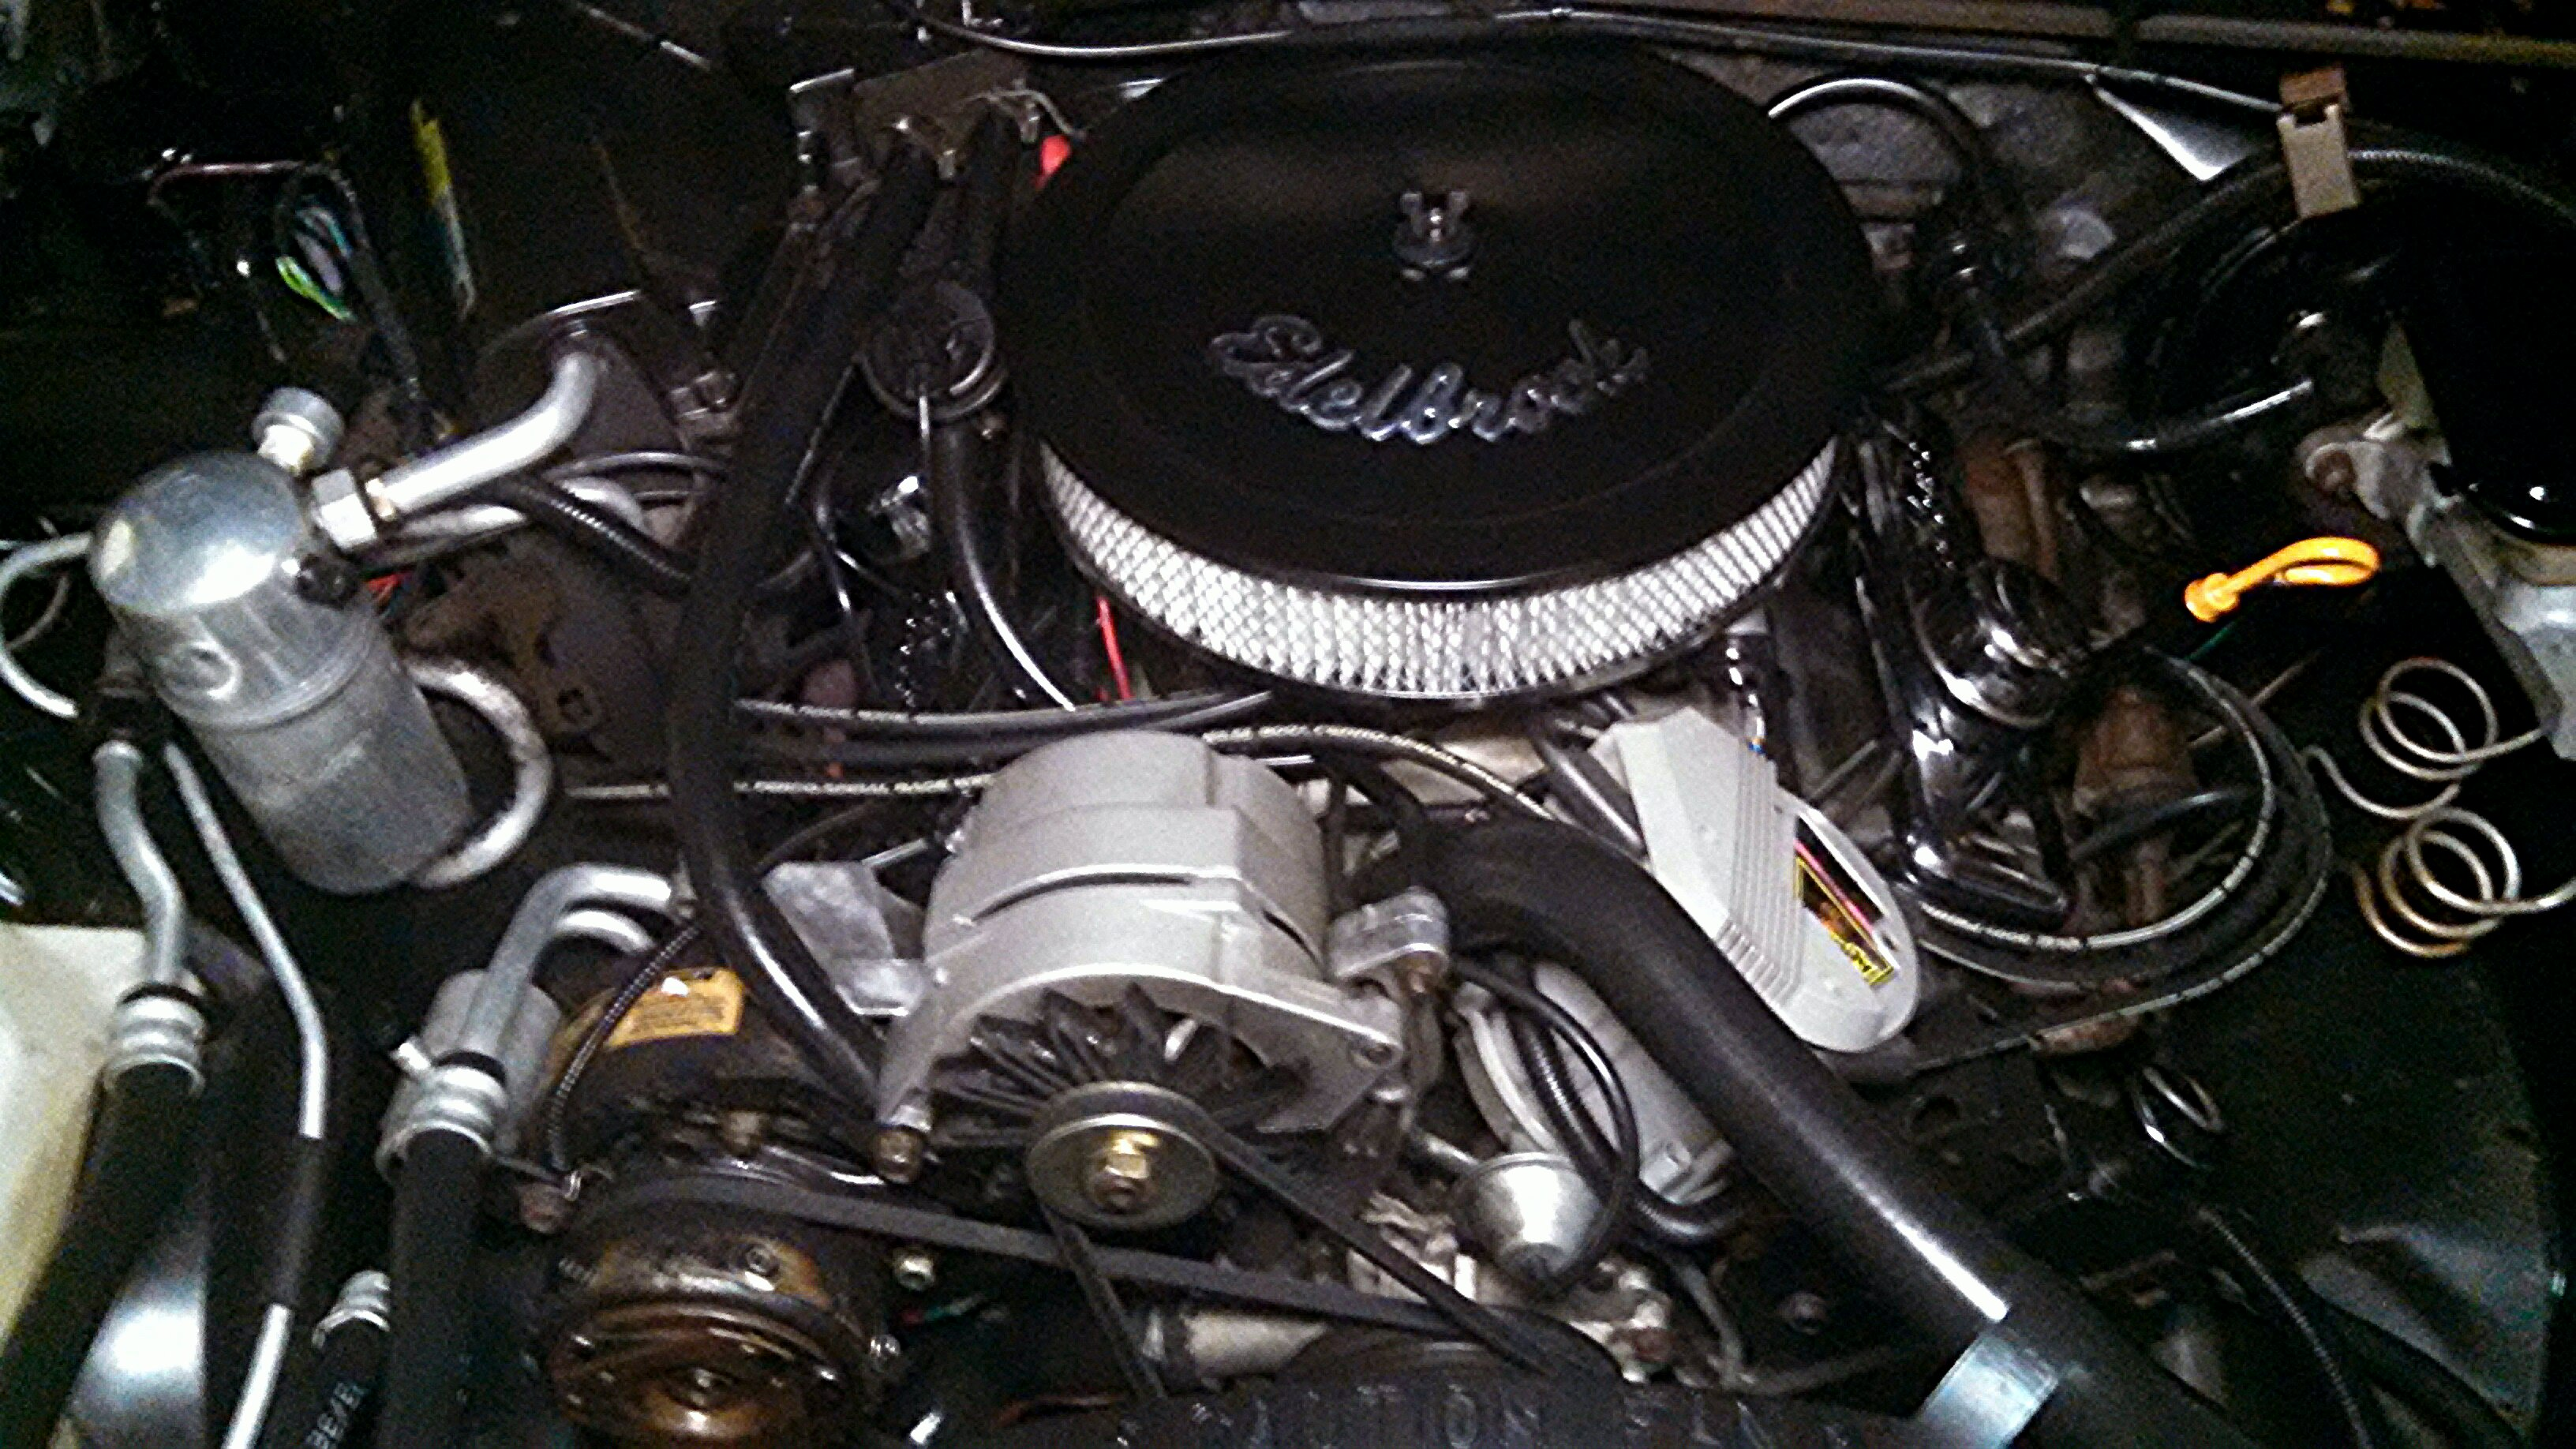 3 8 V6 231 Engine Modifications  - Gbodyforum